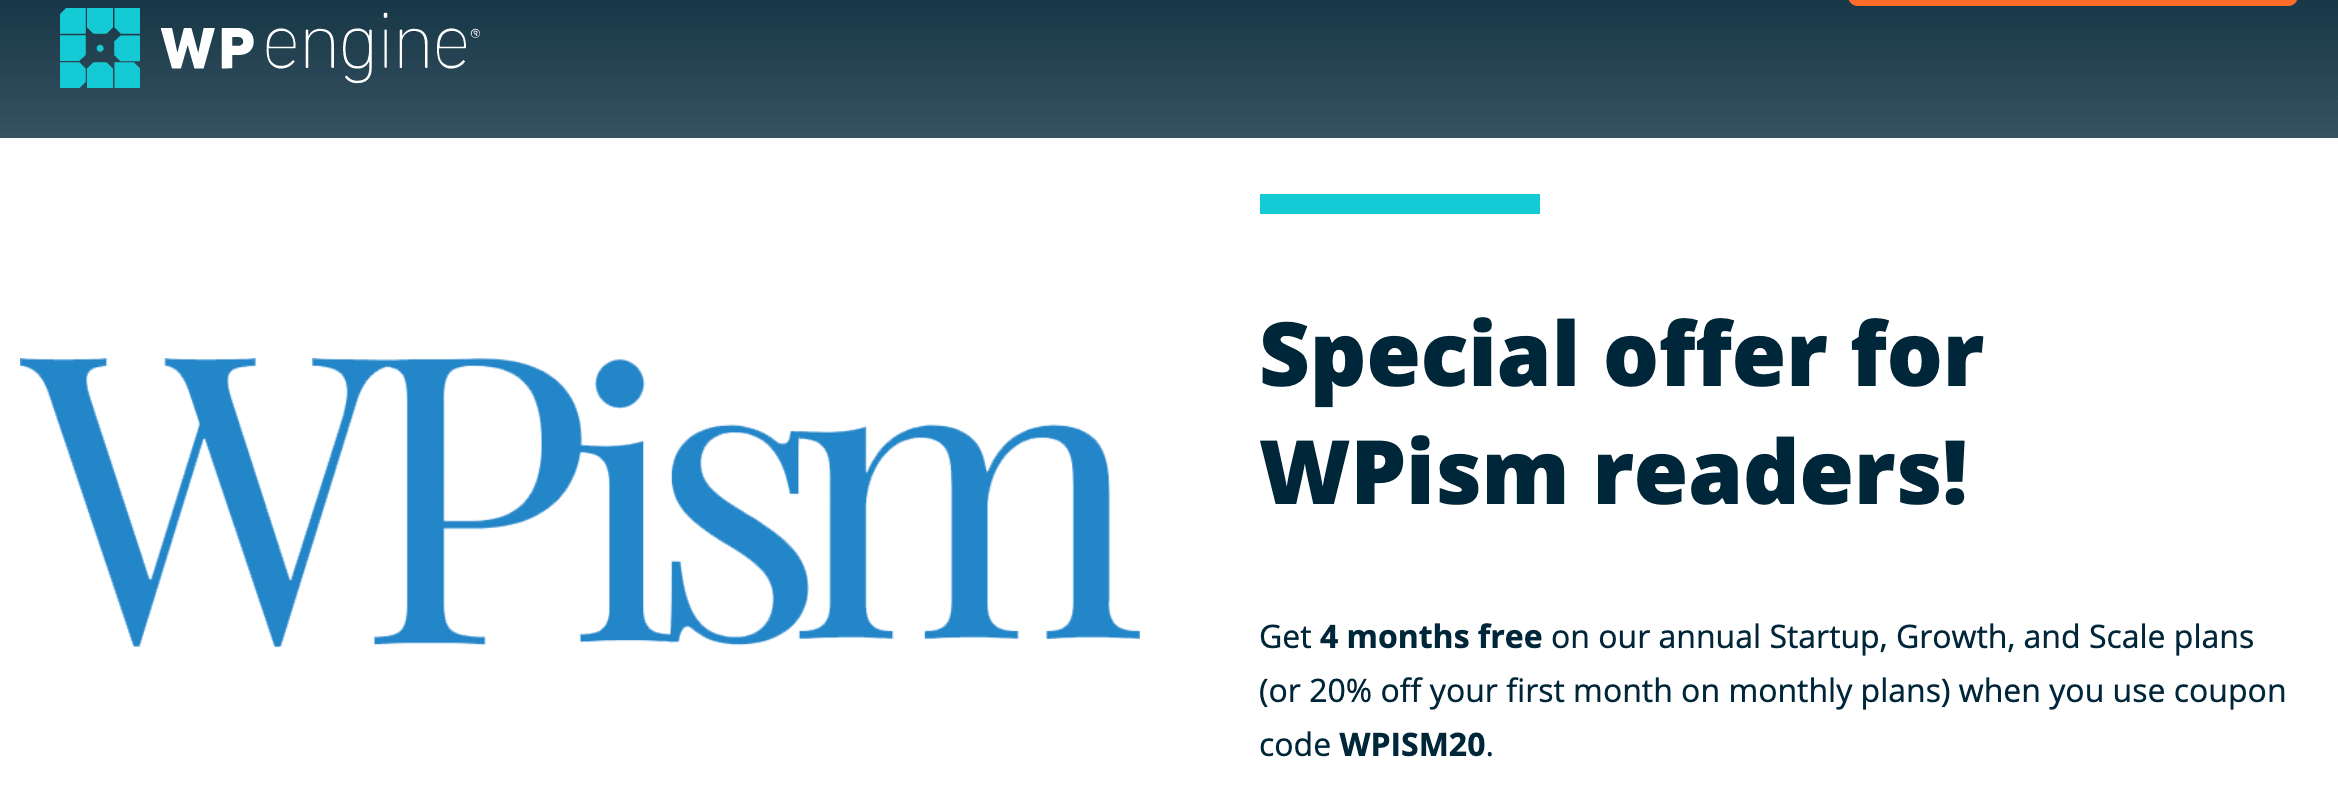 WP Engine Coupon Special Offer wpism20 discount code